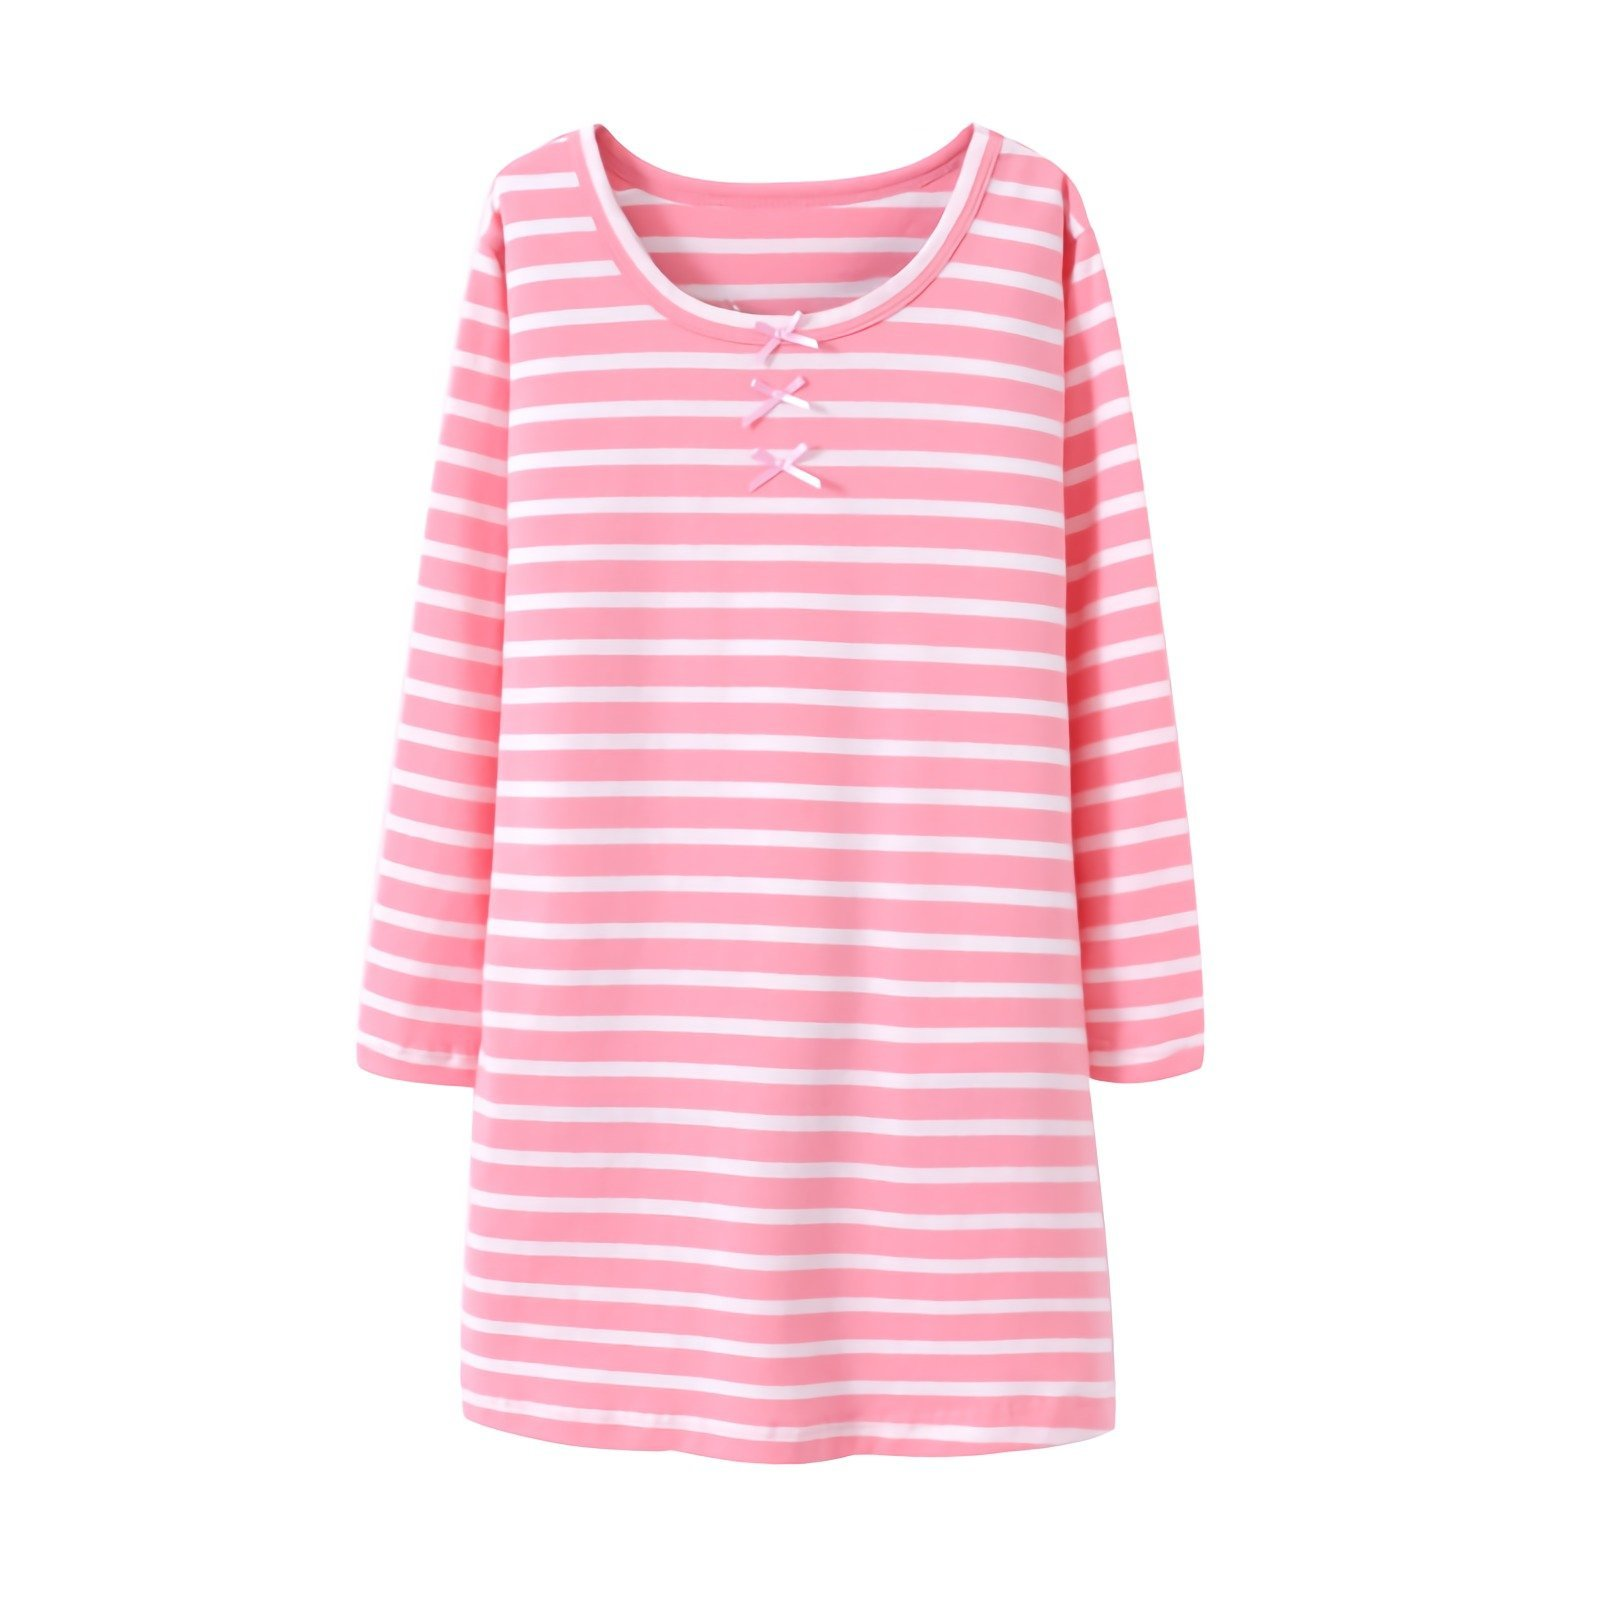 Little Girls' Princess Nightgowns Bowknot Sleep Shirts Long Sleeve Nightie Pink for Toddler 5t